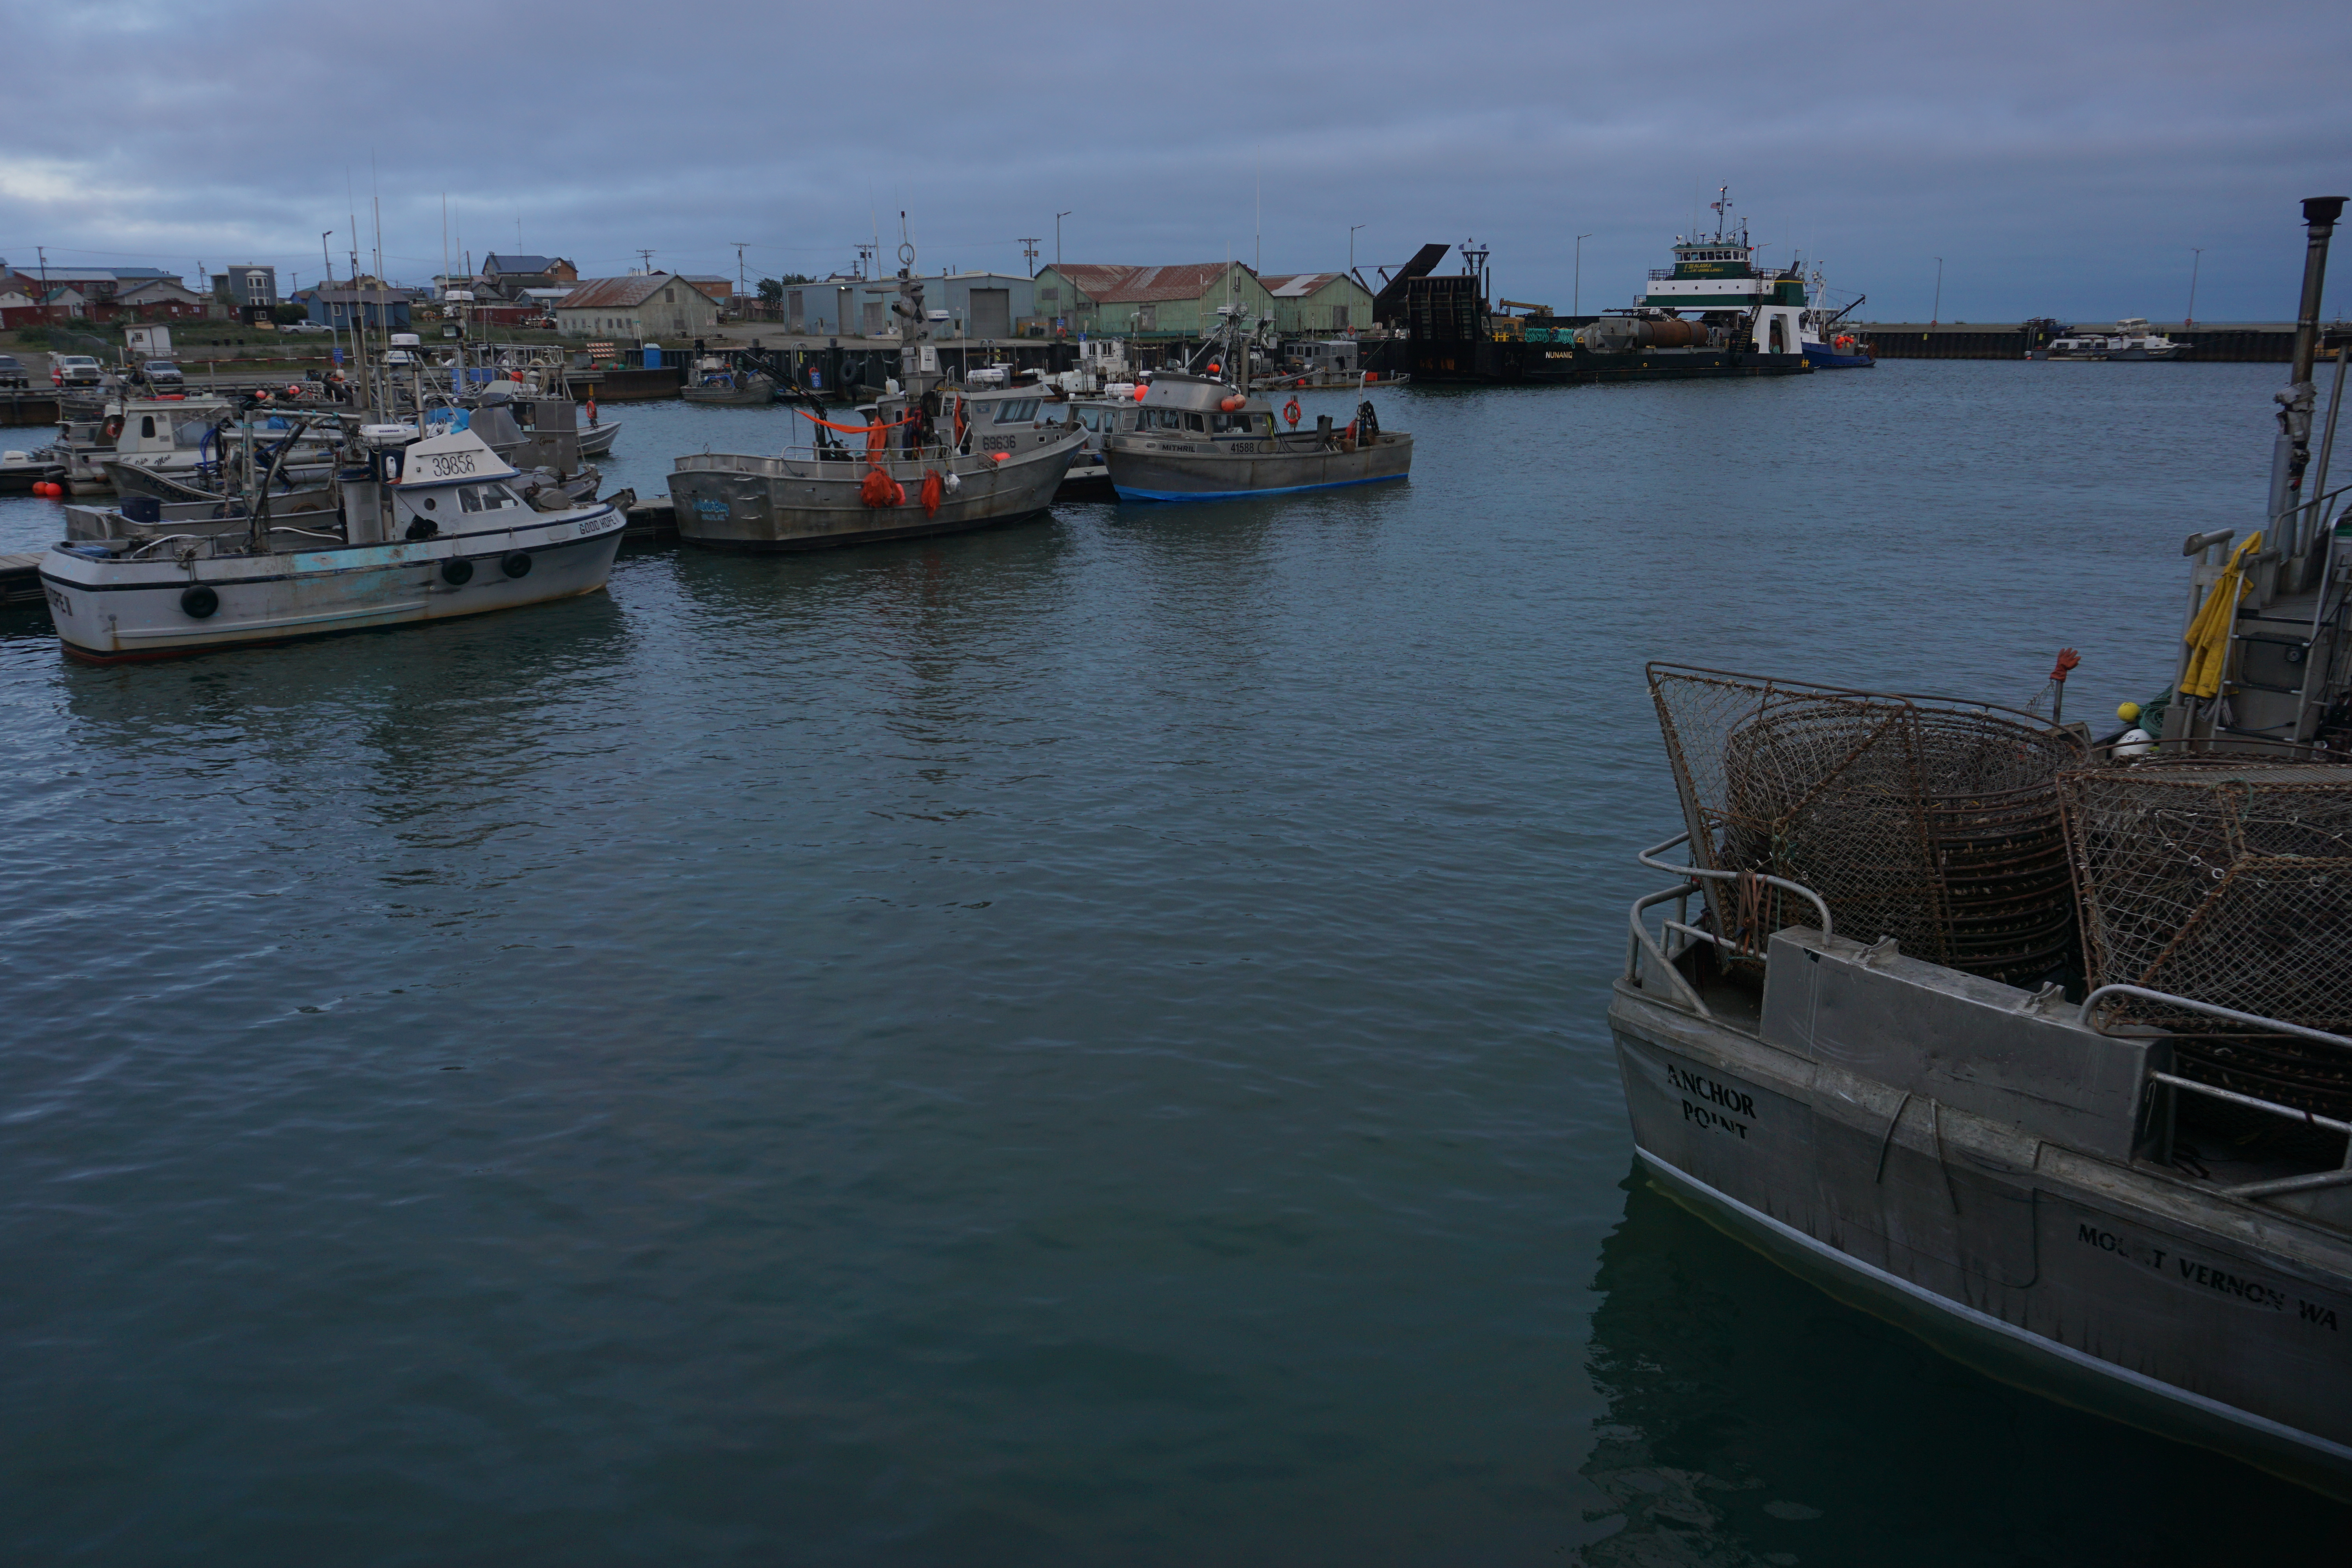 As sea ice melts, momentum grows for Nome's Arctic port plan